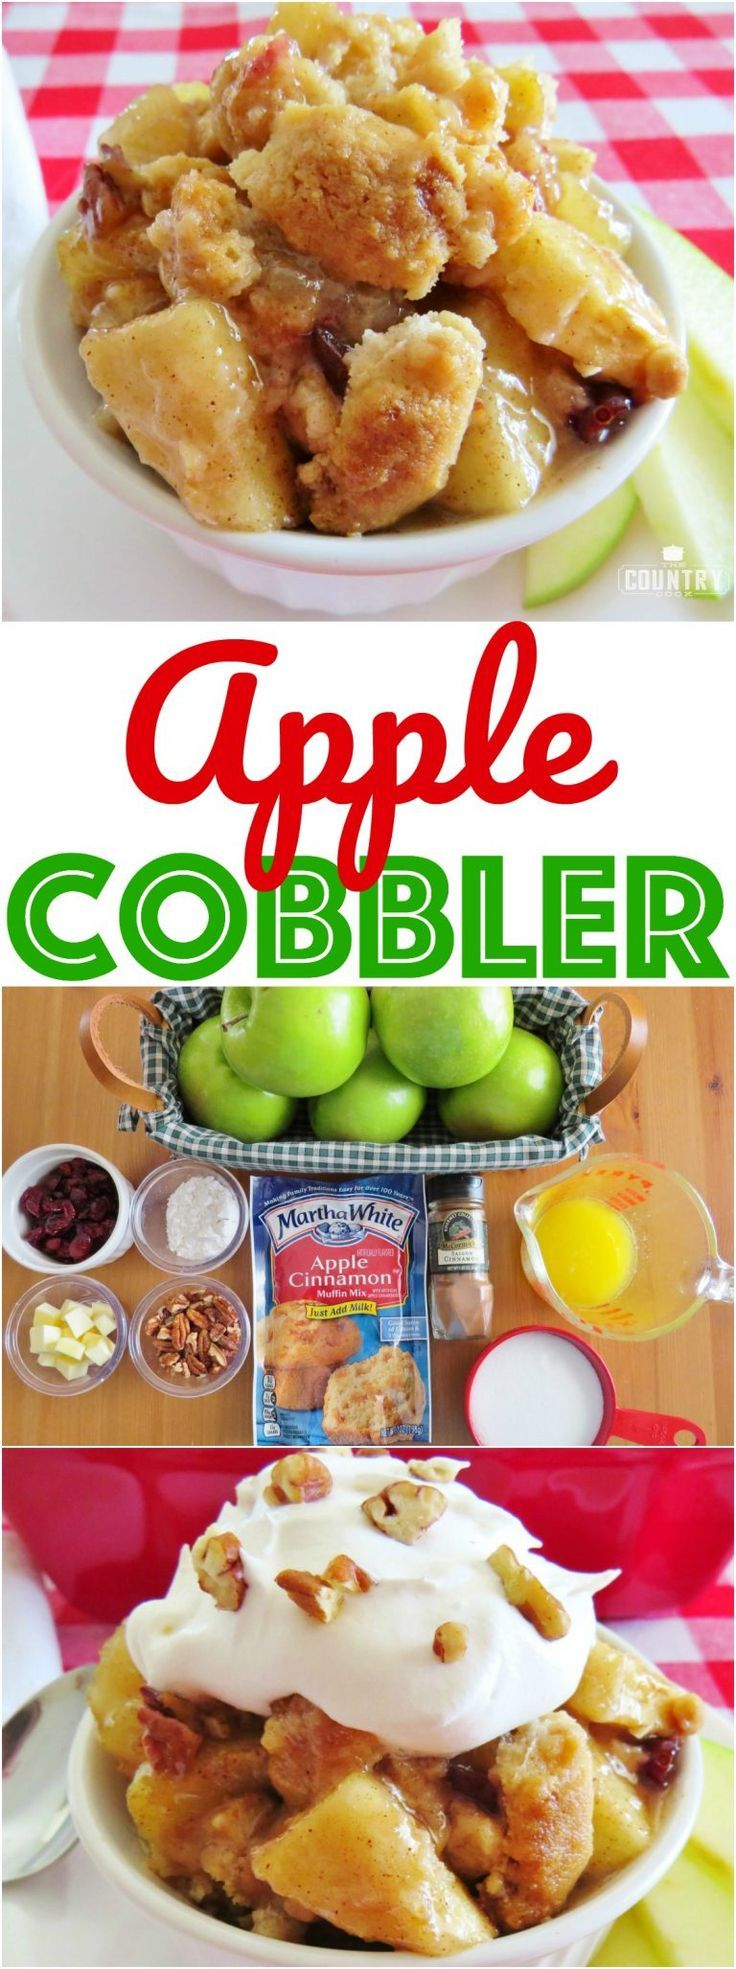 Easy Apple Cobbler recipe from The Country Cook